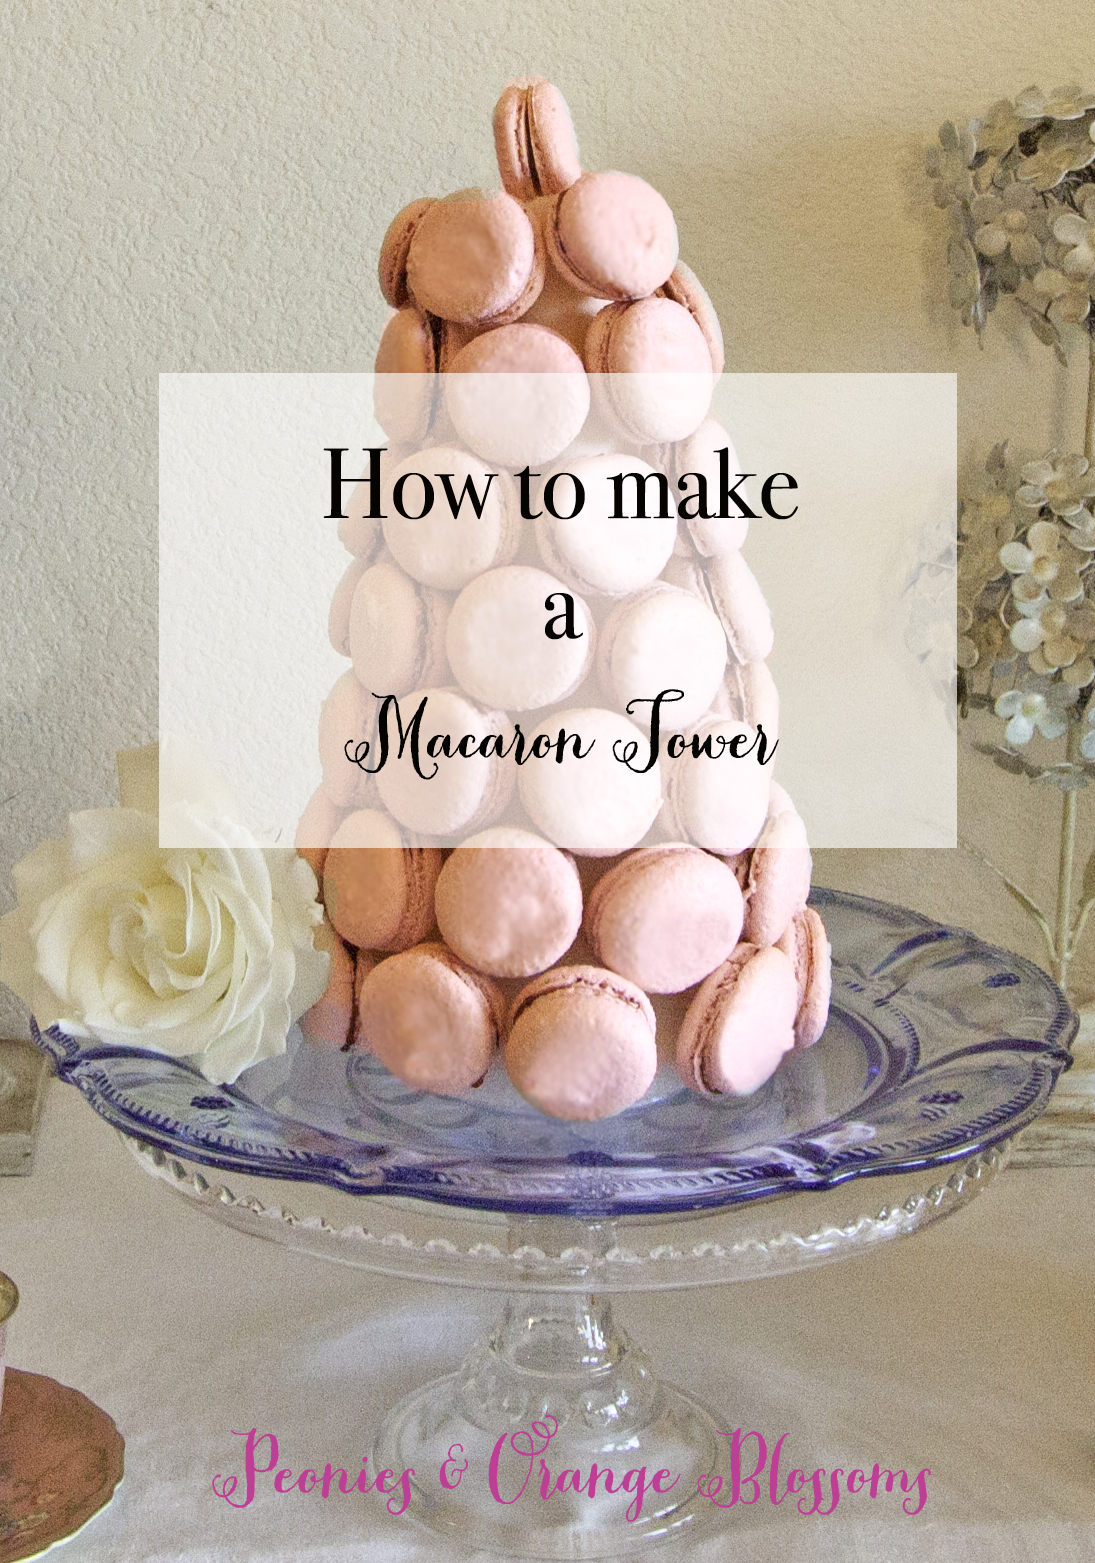 How to Make a Macaron Tower - a DIY tutorial for French Macaron Towers!